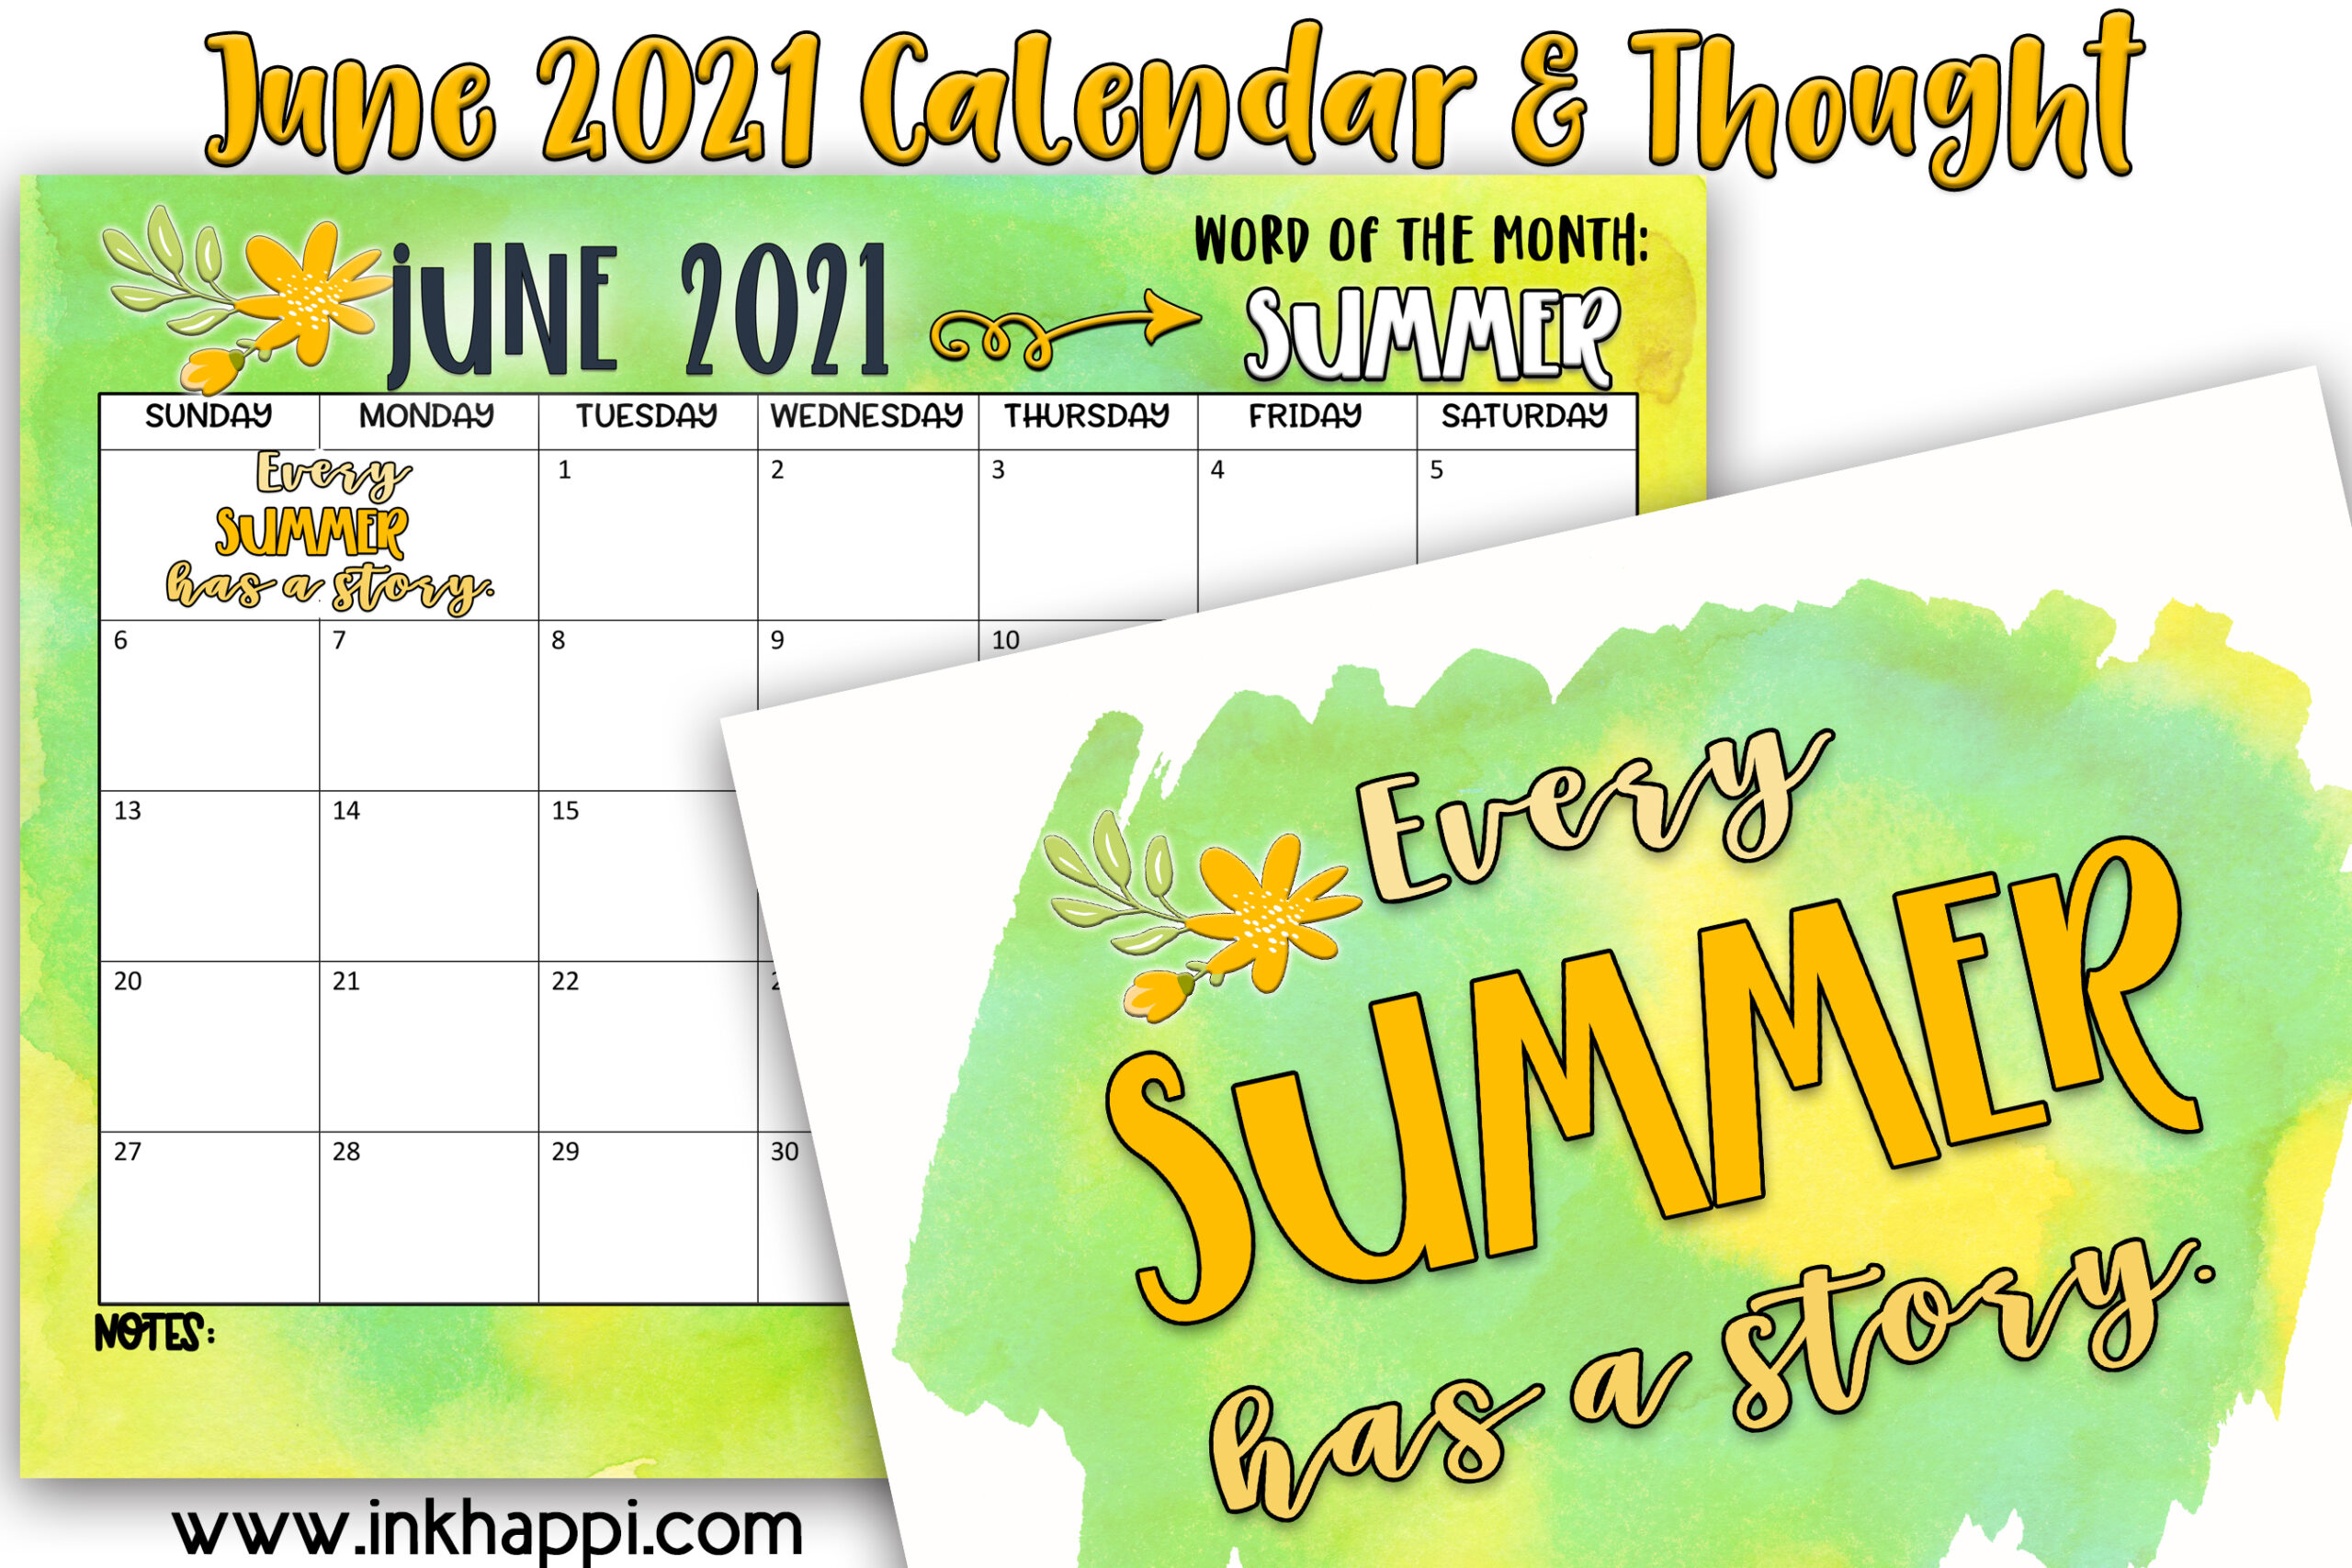 June 2021 Calendar and some quotes about summer